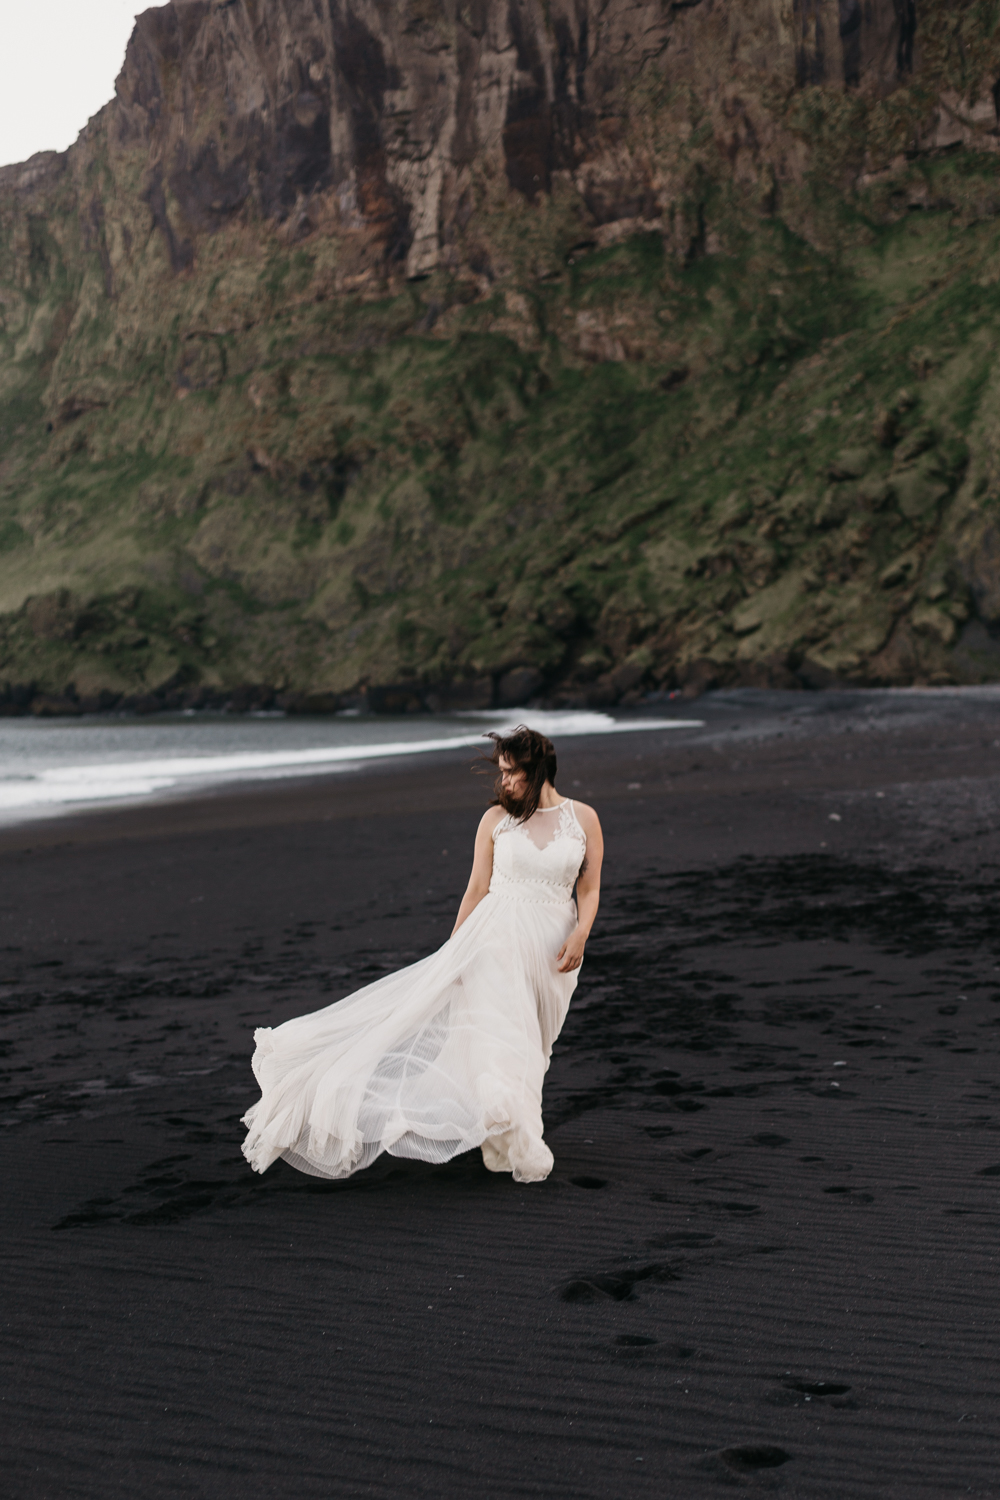 anna szczekutowicz iceland wedding photogapher elopement photographer-74.jpg